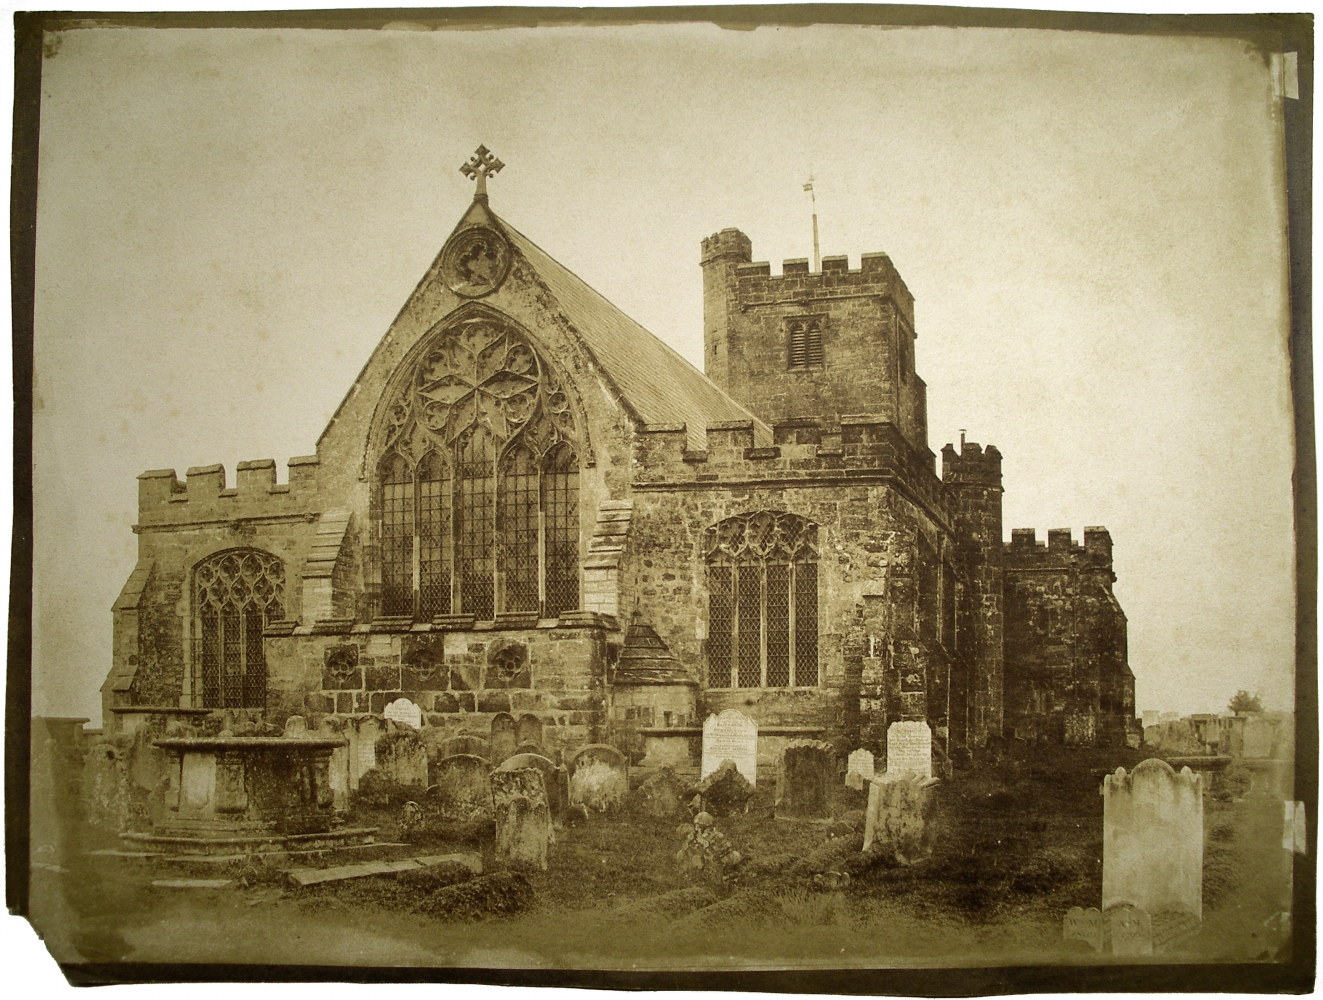 """Benjamin Brecknell TURNER (English, 1815-1894) East End """"Hawkhurst Church"""" Kent*, 1852-1854 Salt print from a waxed calotype negative 29.9 x 39.8 cm on 31.4 x 41.6 cm paper Titled """"Hawkhurst Church"""" in pencil on verso"""